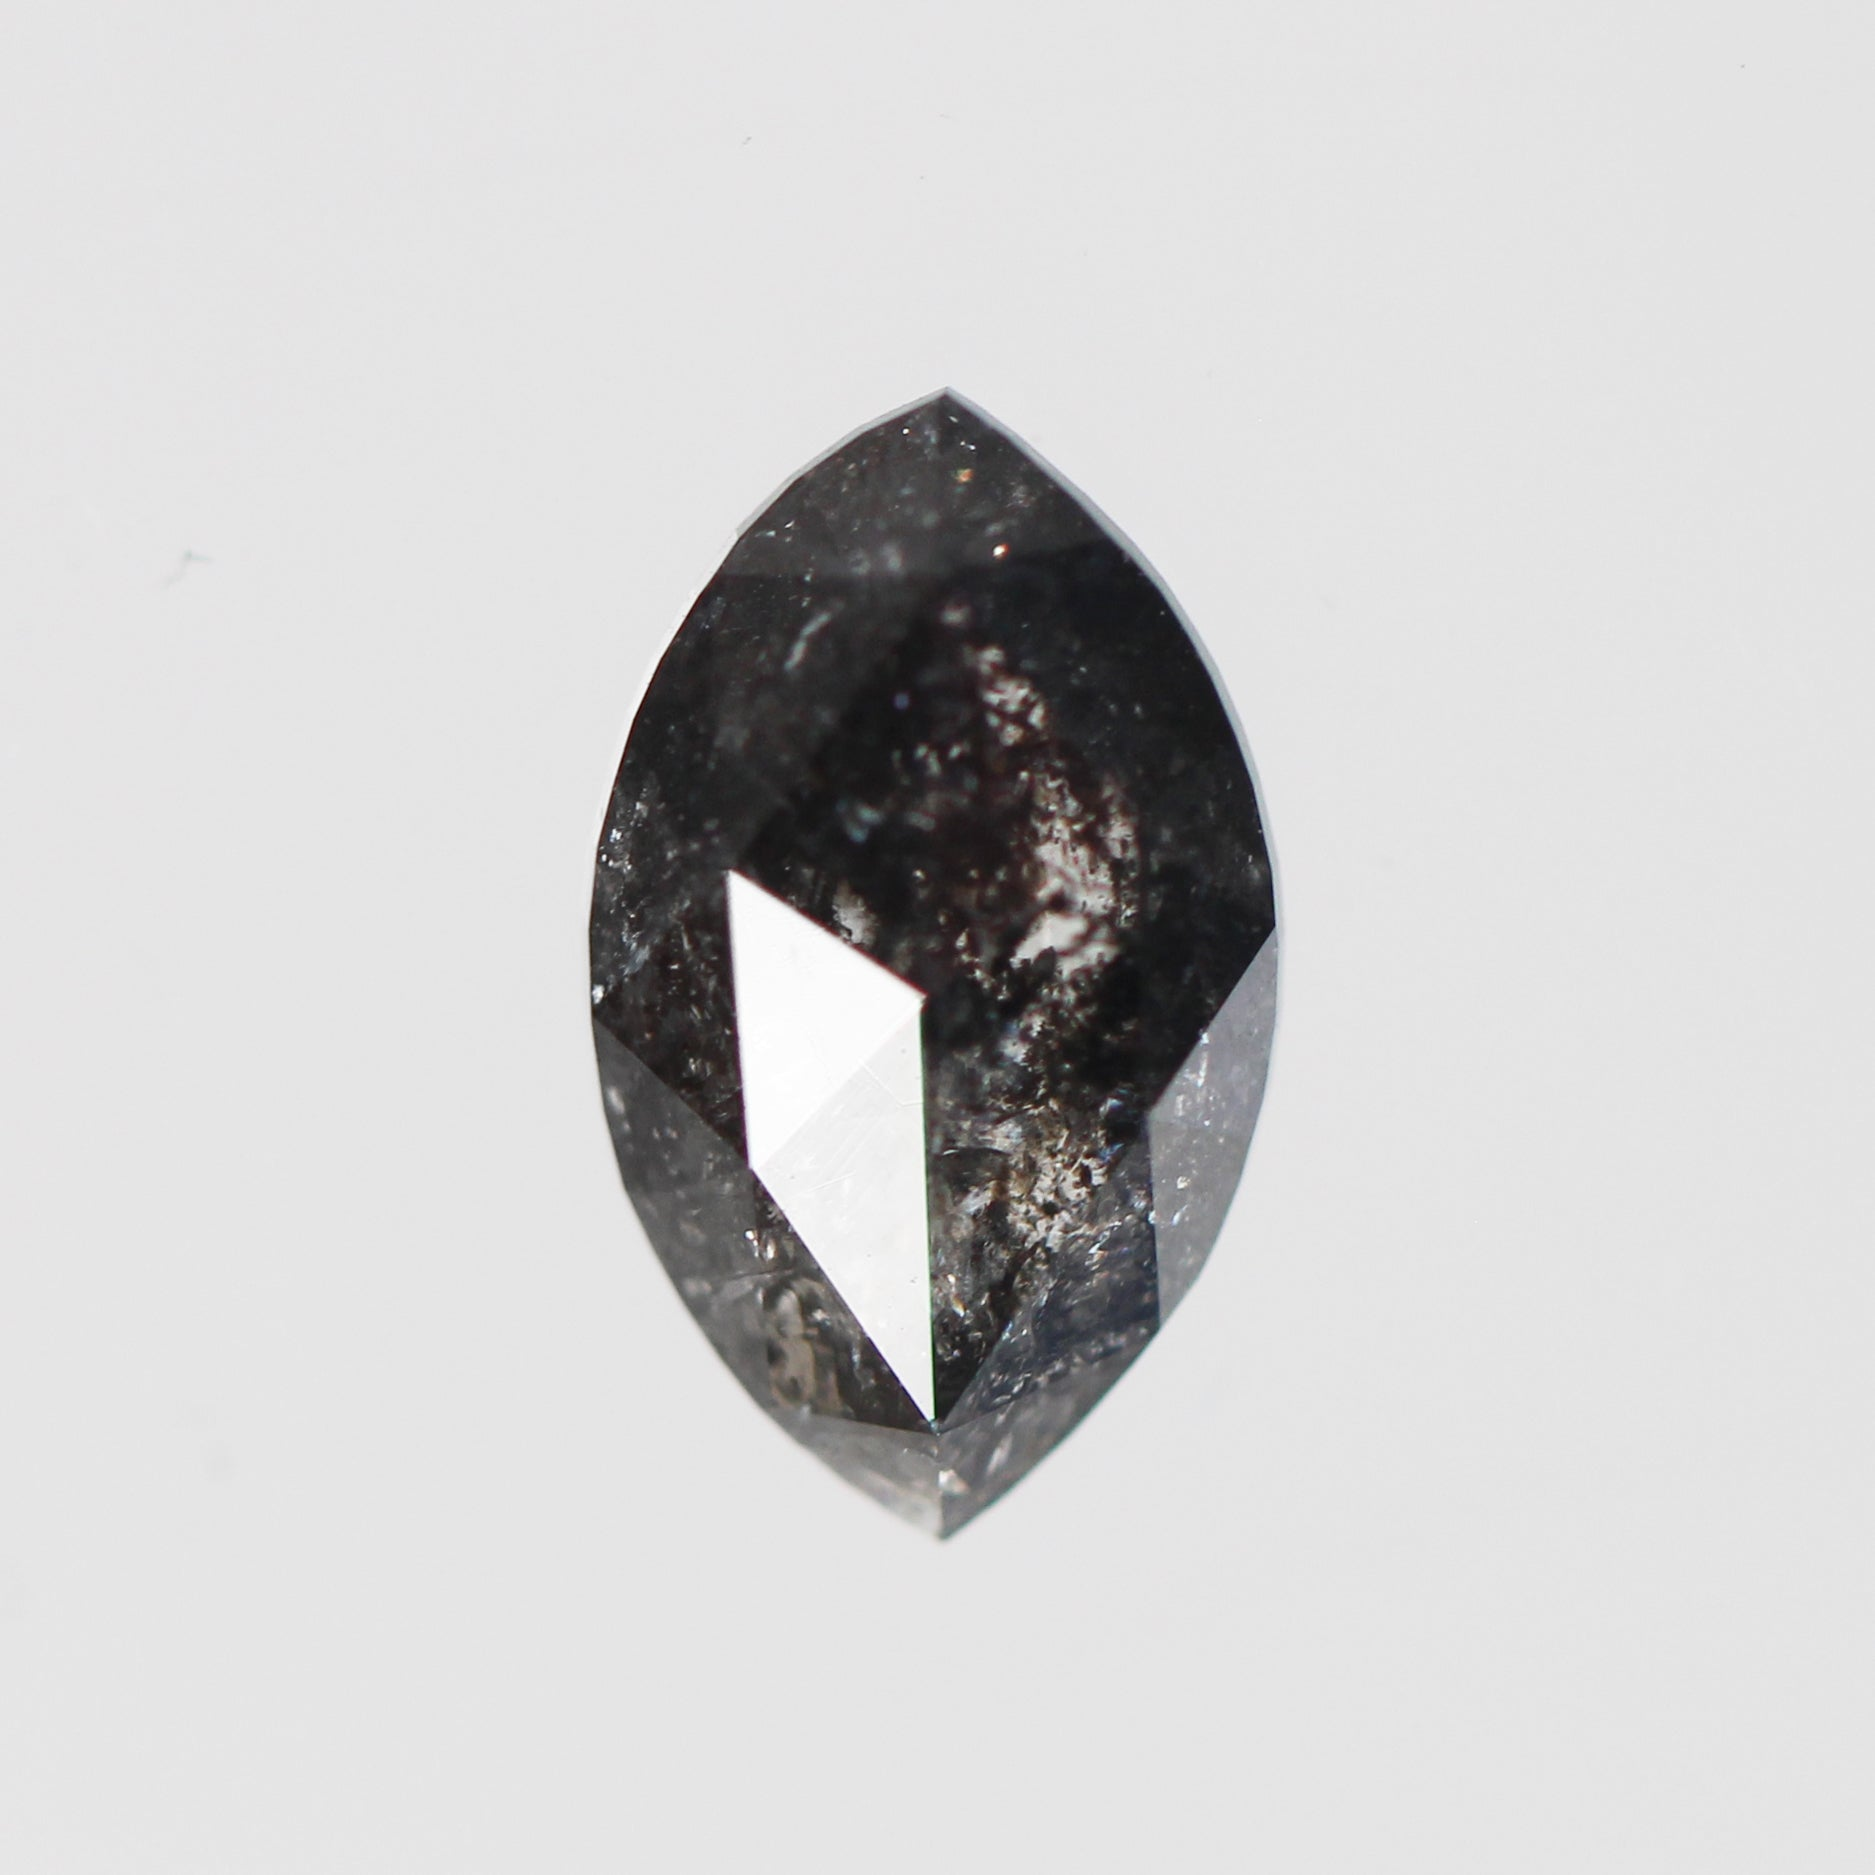 2.35 Carat Marquise Celestial Diamond for Custom Work - Inventory Code MRB235 - NB - Celestial Diamonds ® by Midwinter Co.